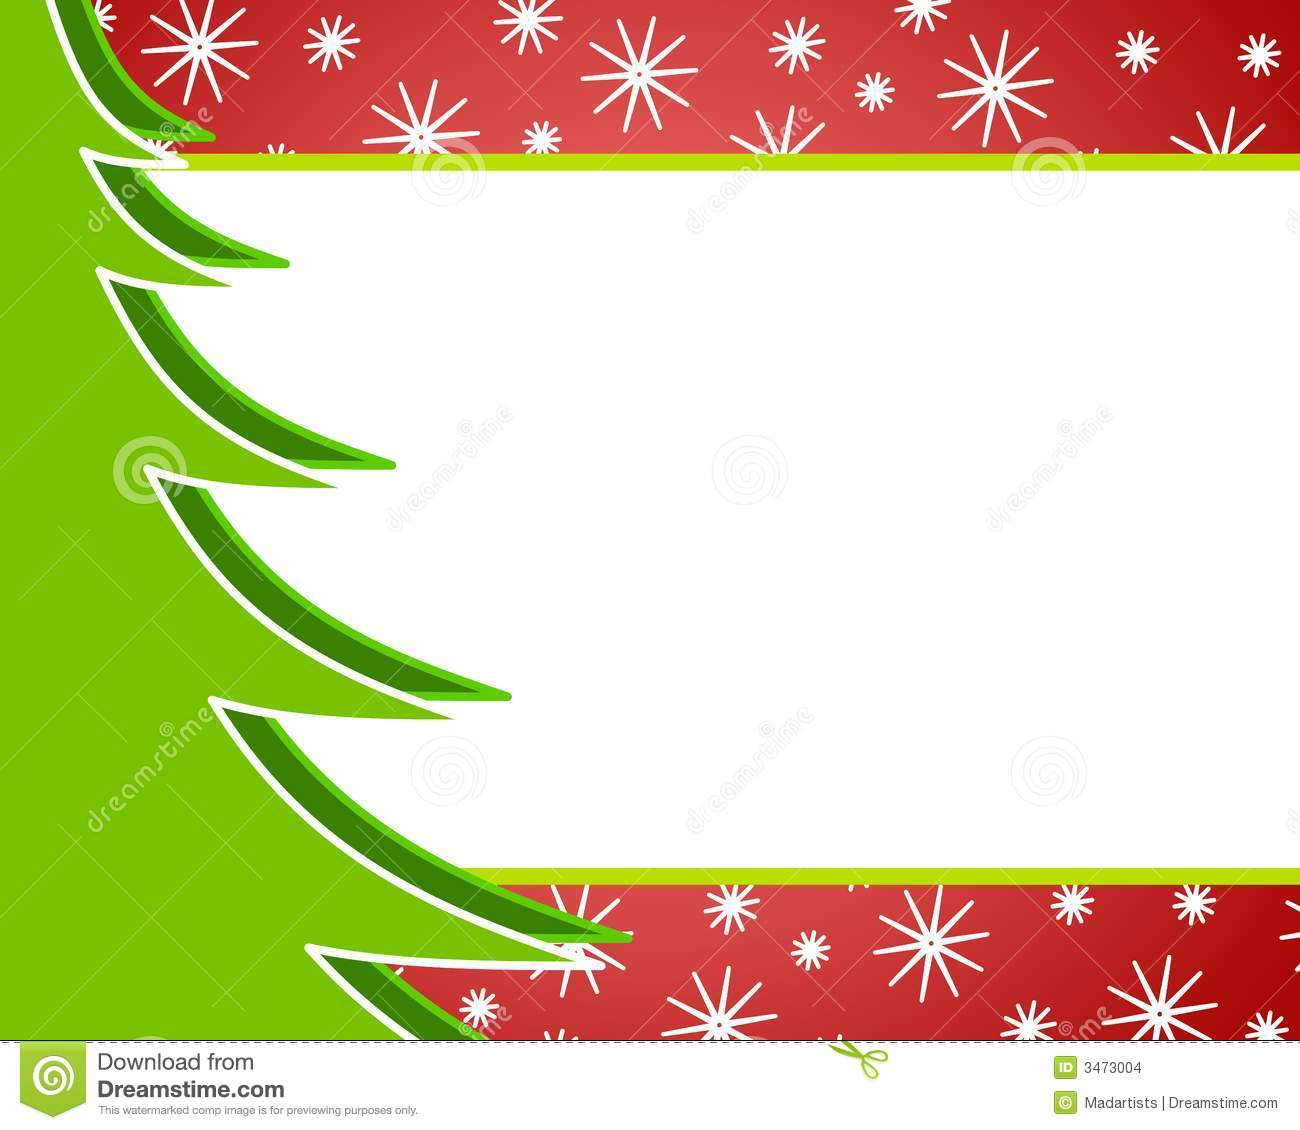 Christmas Background Clipart.Christmas Background Clipart 5 Clipart Station